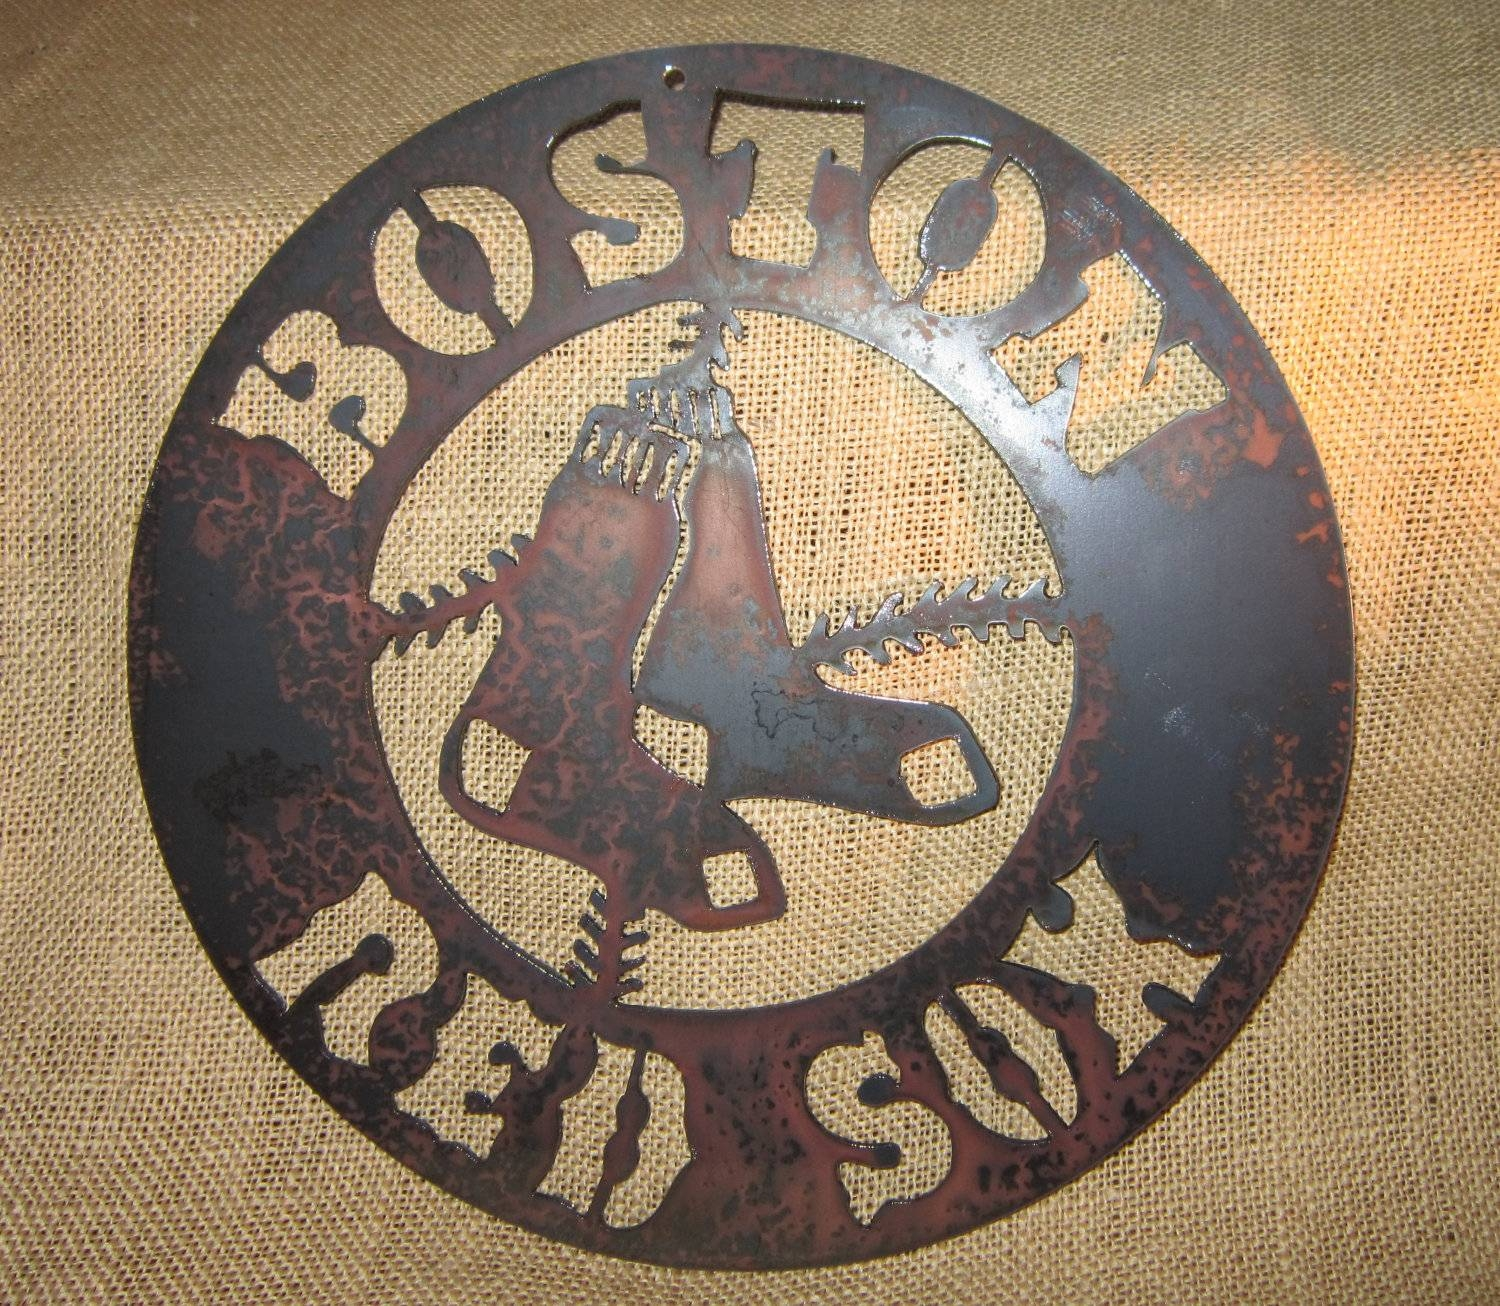 Boston Red Sox Metal Art For Most Up To Date Boston Red Sox Wall Art (View 1 of 25)